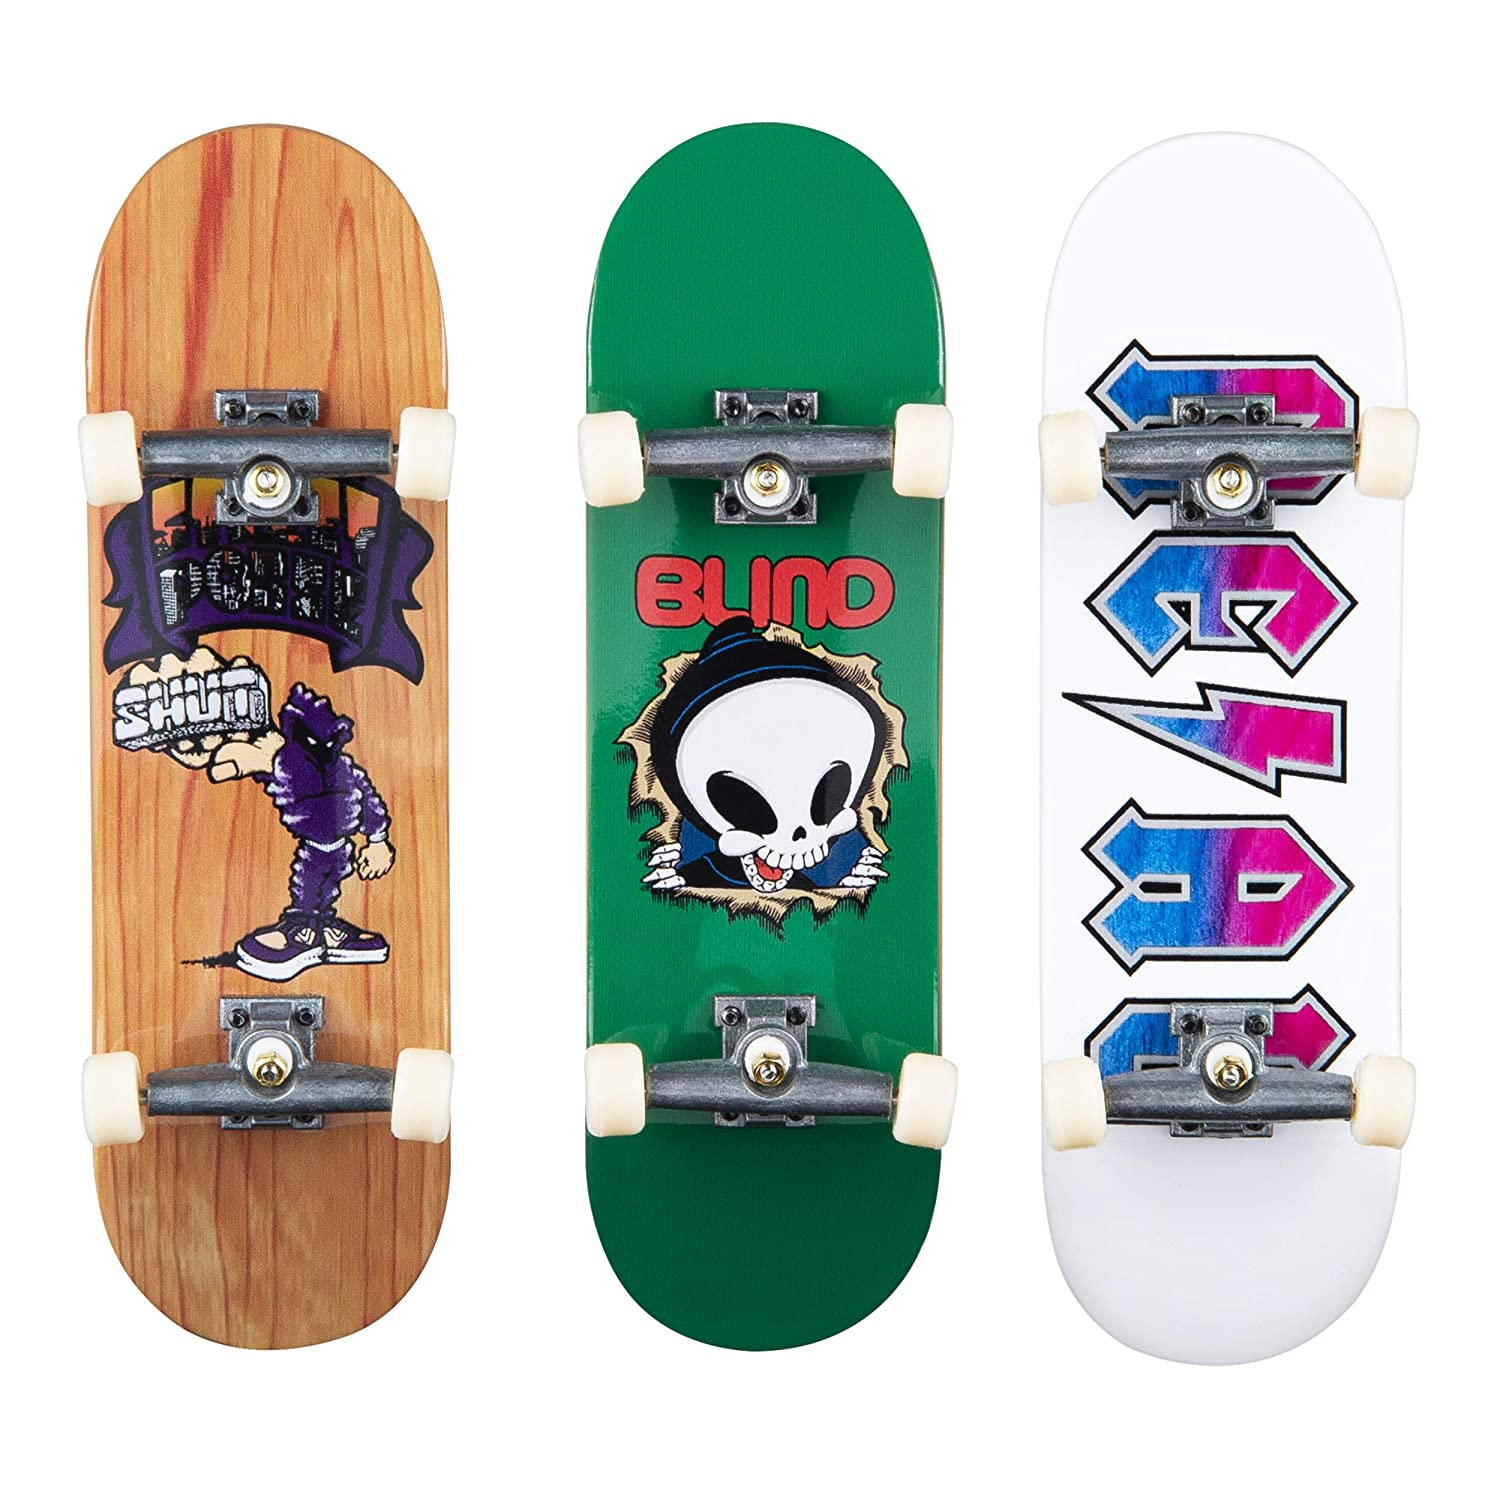 TECH DECK Ultimate Street Spots Pack with 3 Fully Assembled Exclusive Boards Coast to Coast Edition